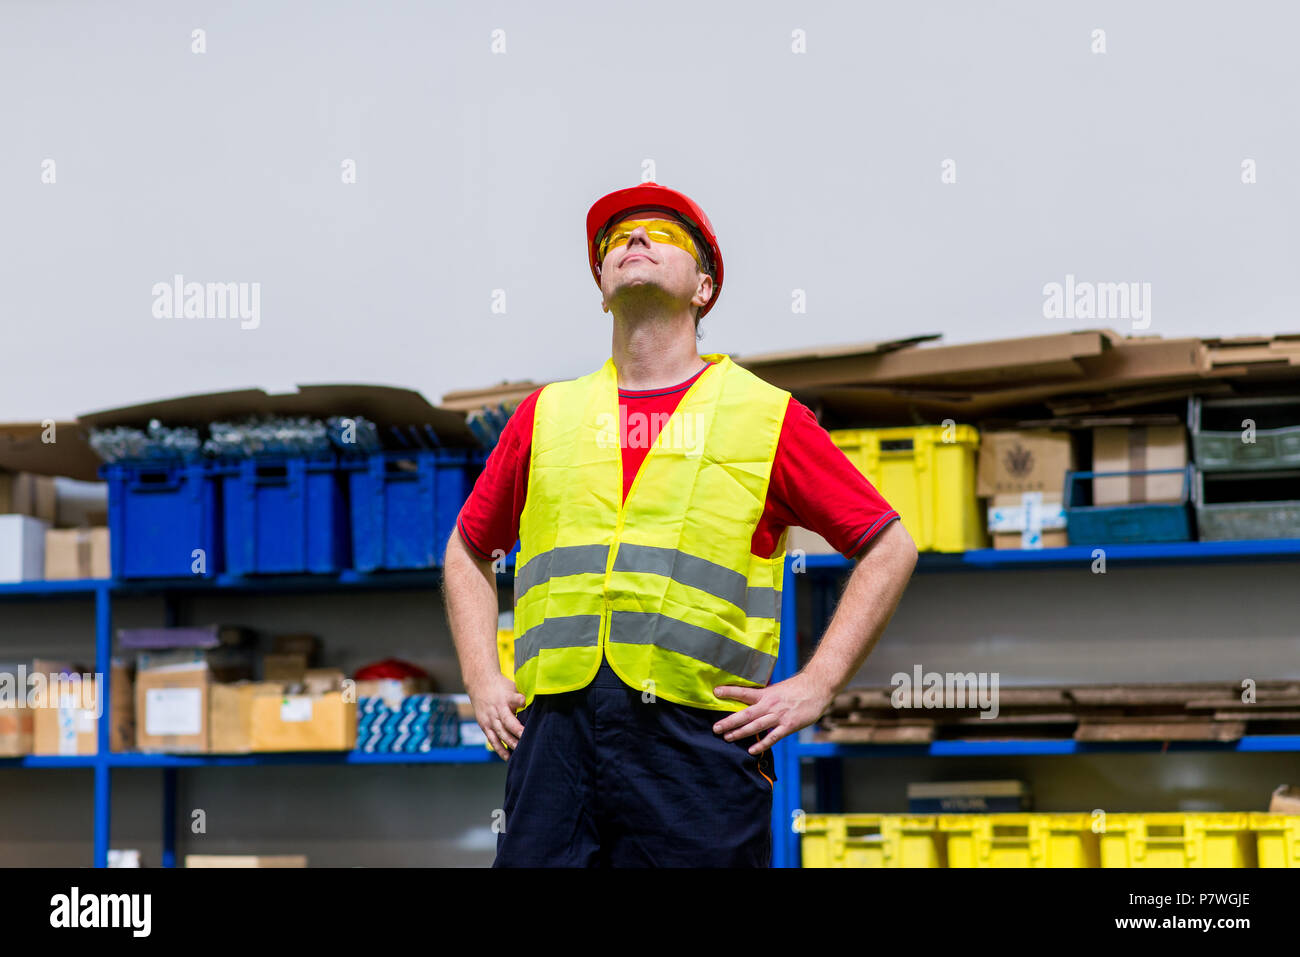 Factory worker wearing yellow reflective west, yellow safety glasses and red helmet. Factory worker with hands on his hips looking up - Stock Image